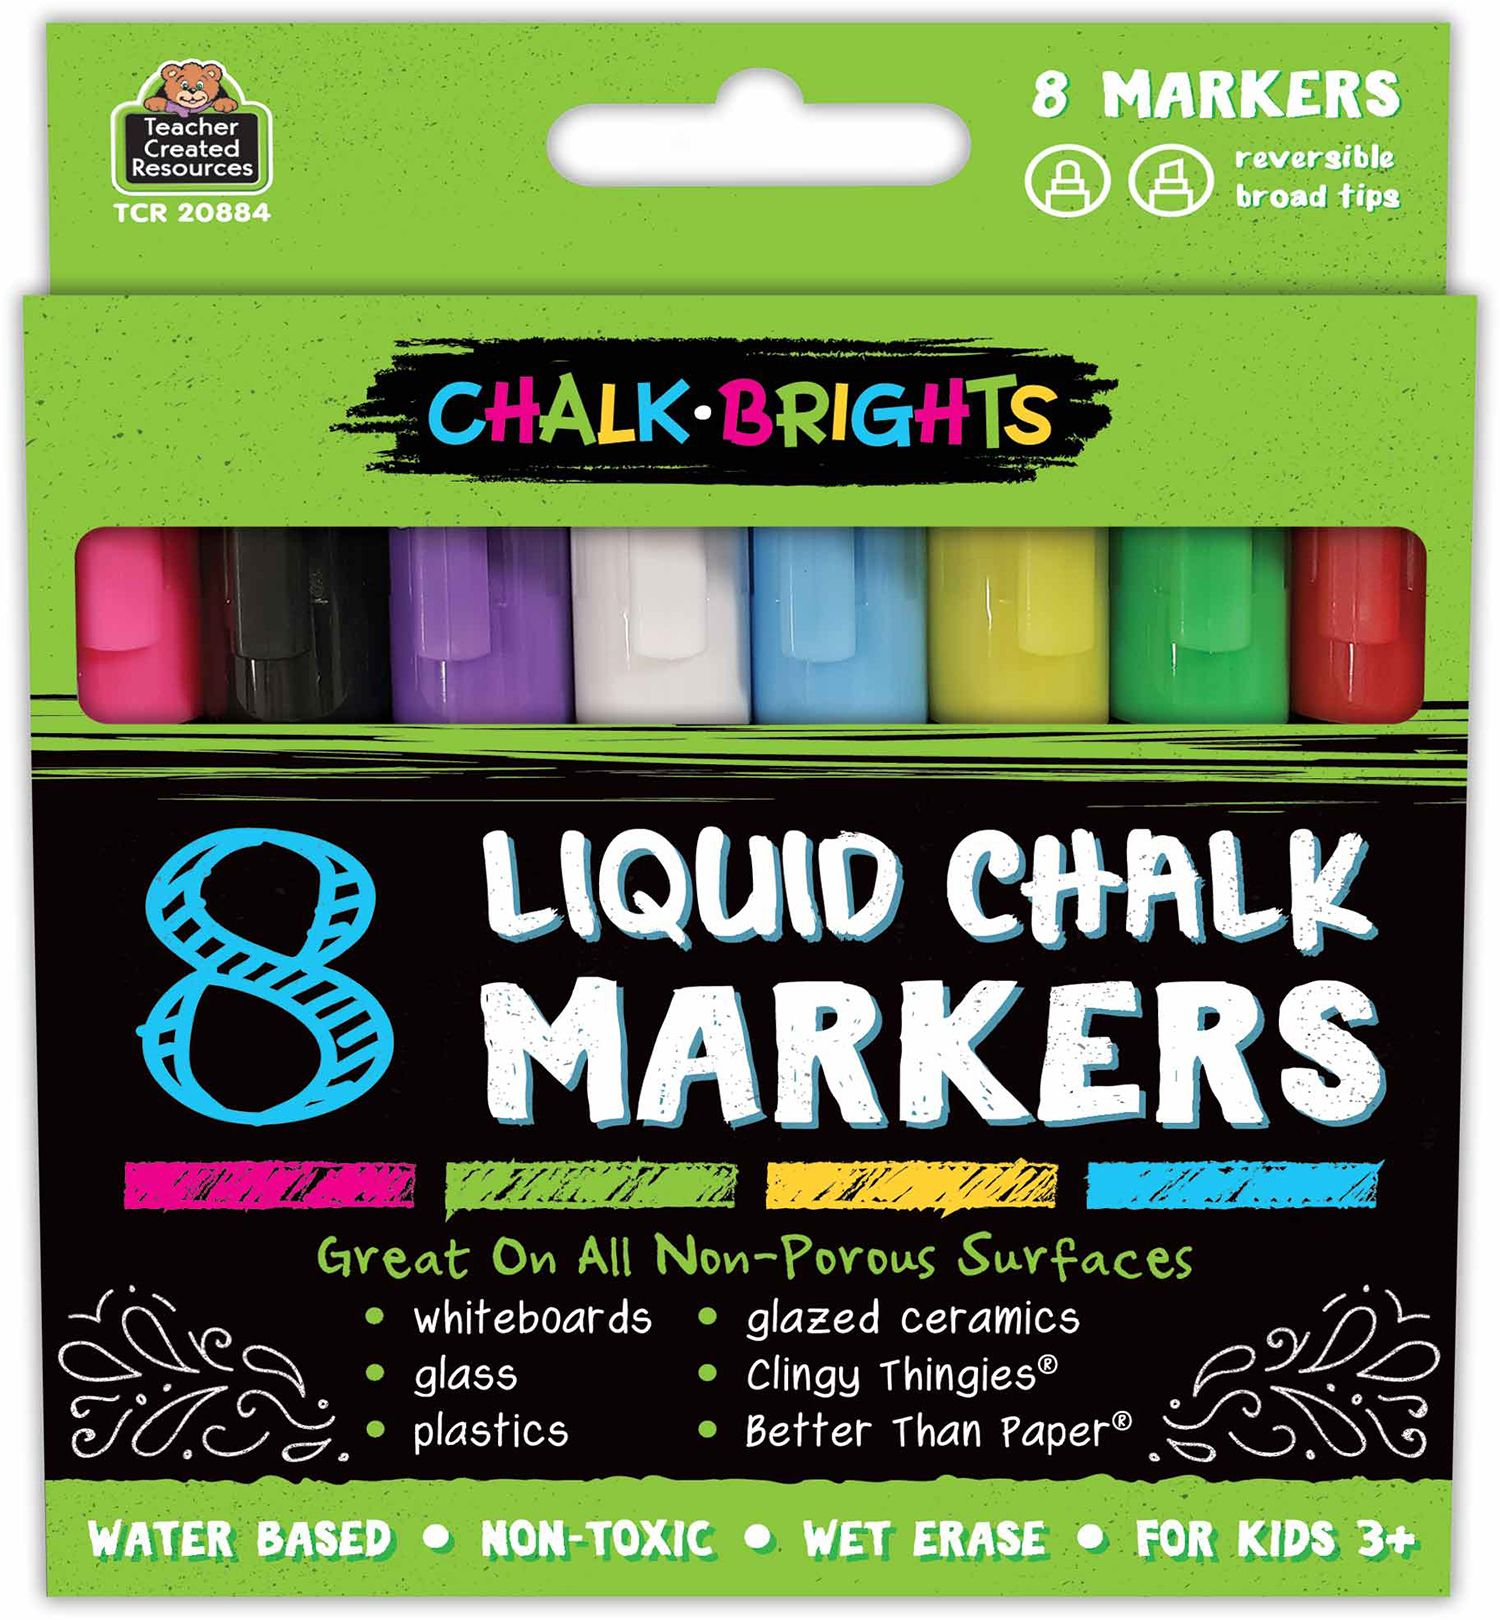 Chalk Brights Liquid Chalk Markers With Images Liquid Chalk